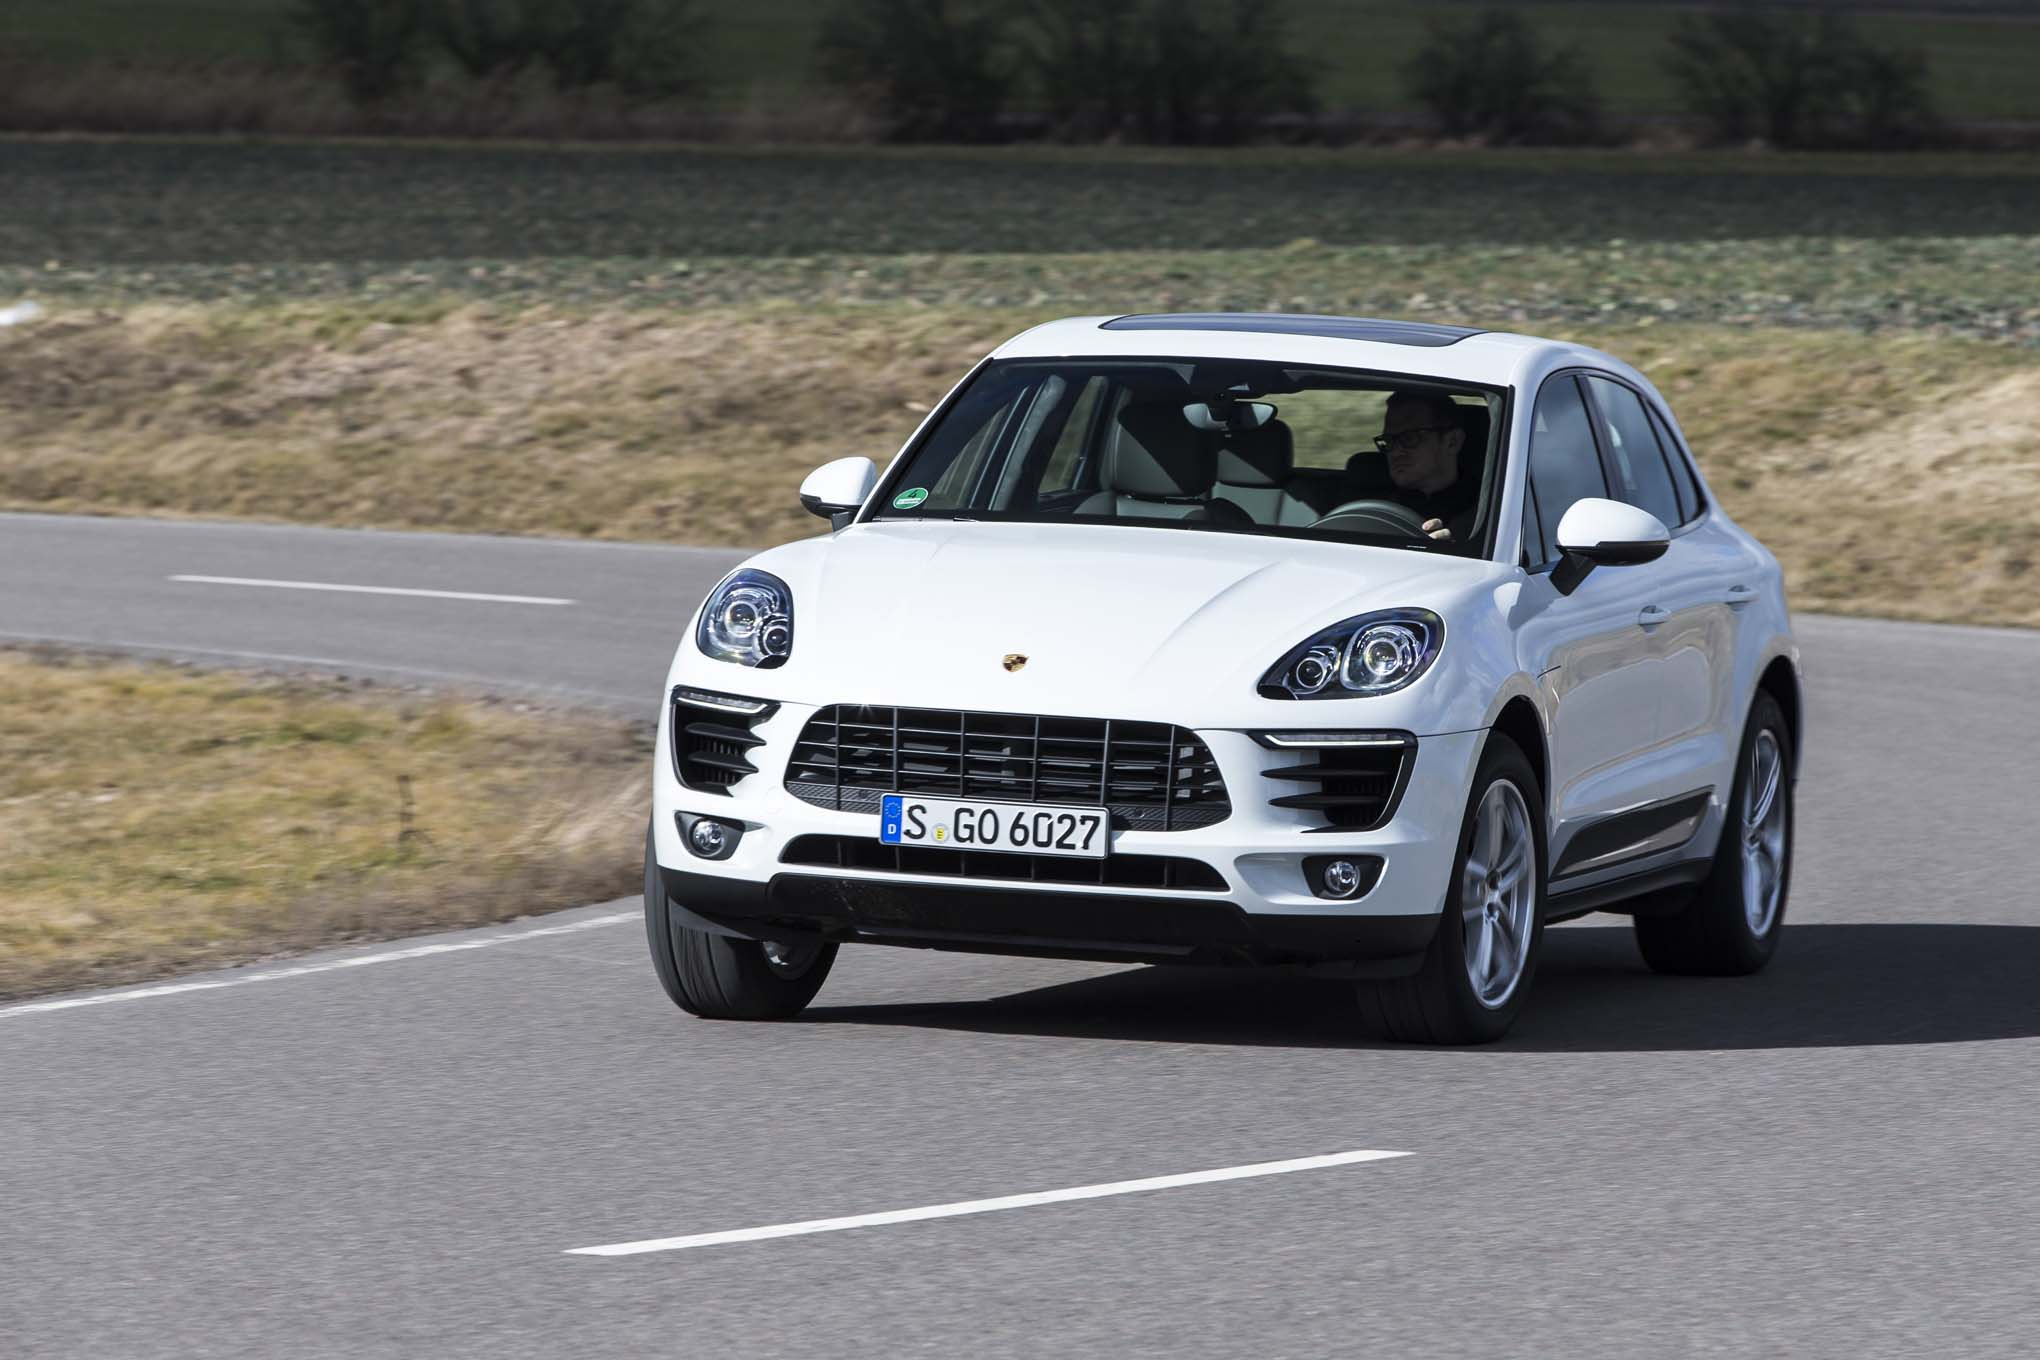 2015 Porsche Macan S Front Three Quarter In Motion 02